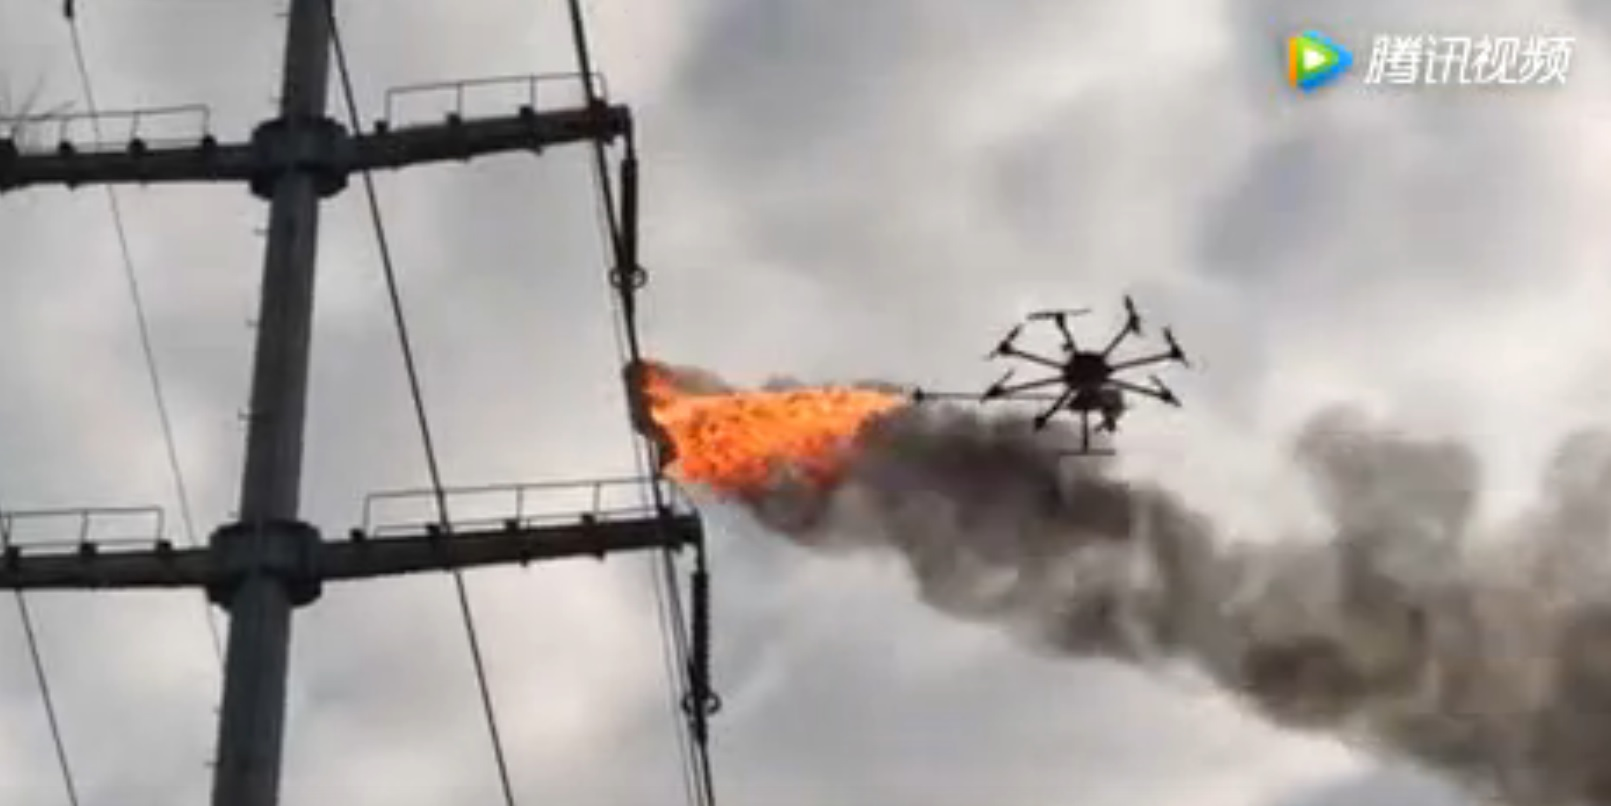 This Fire-breathing Drone is Having None of your Rubbish